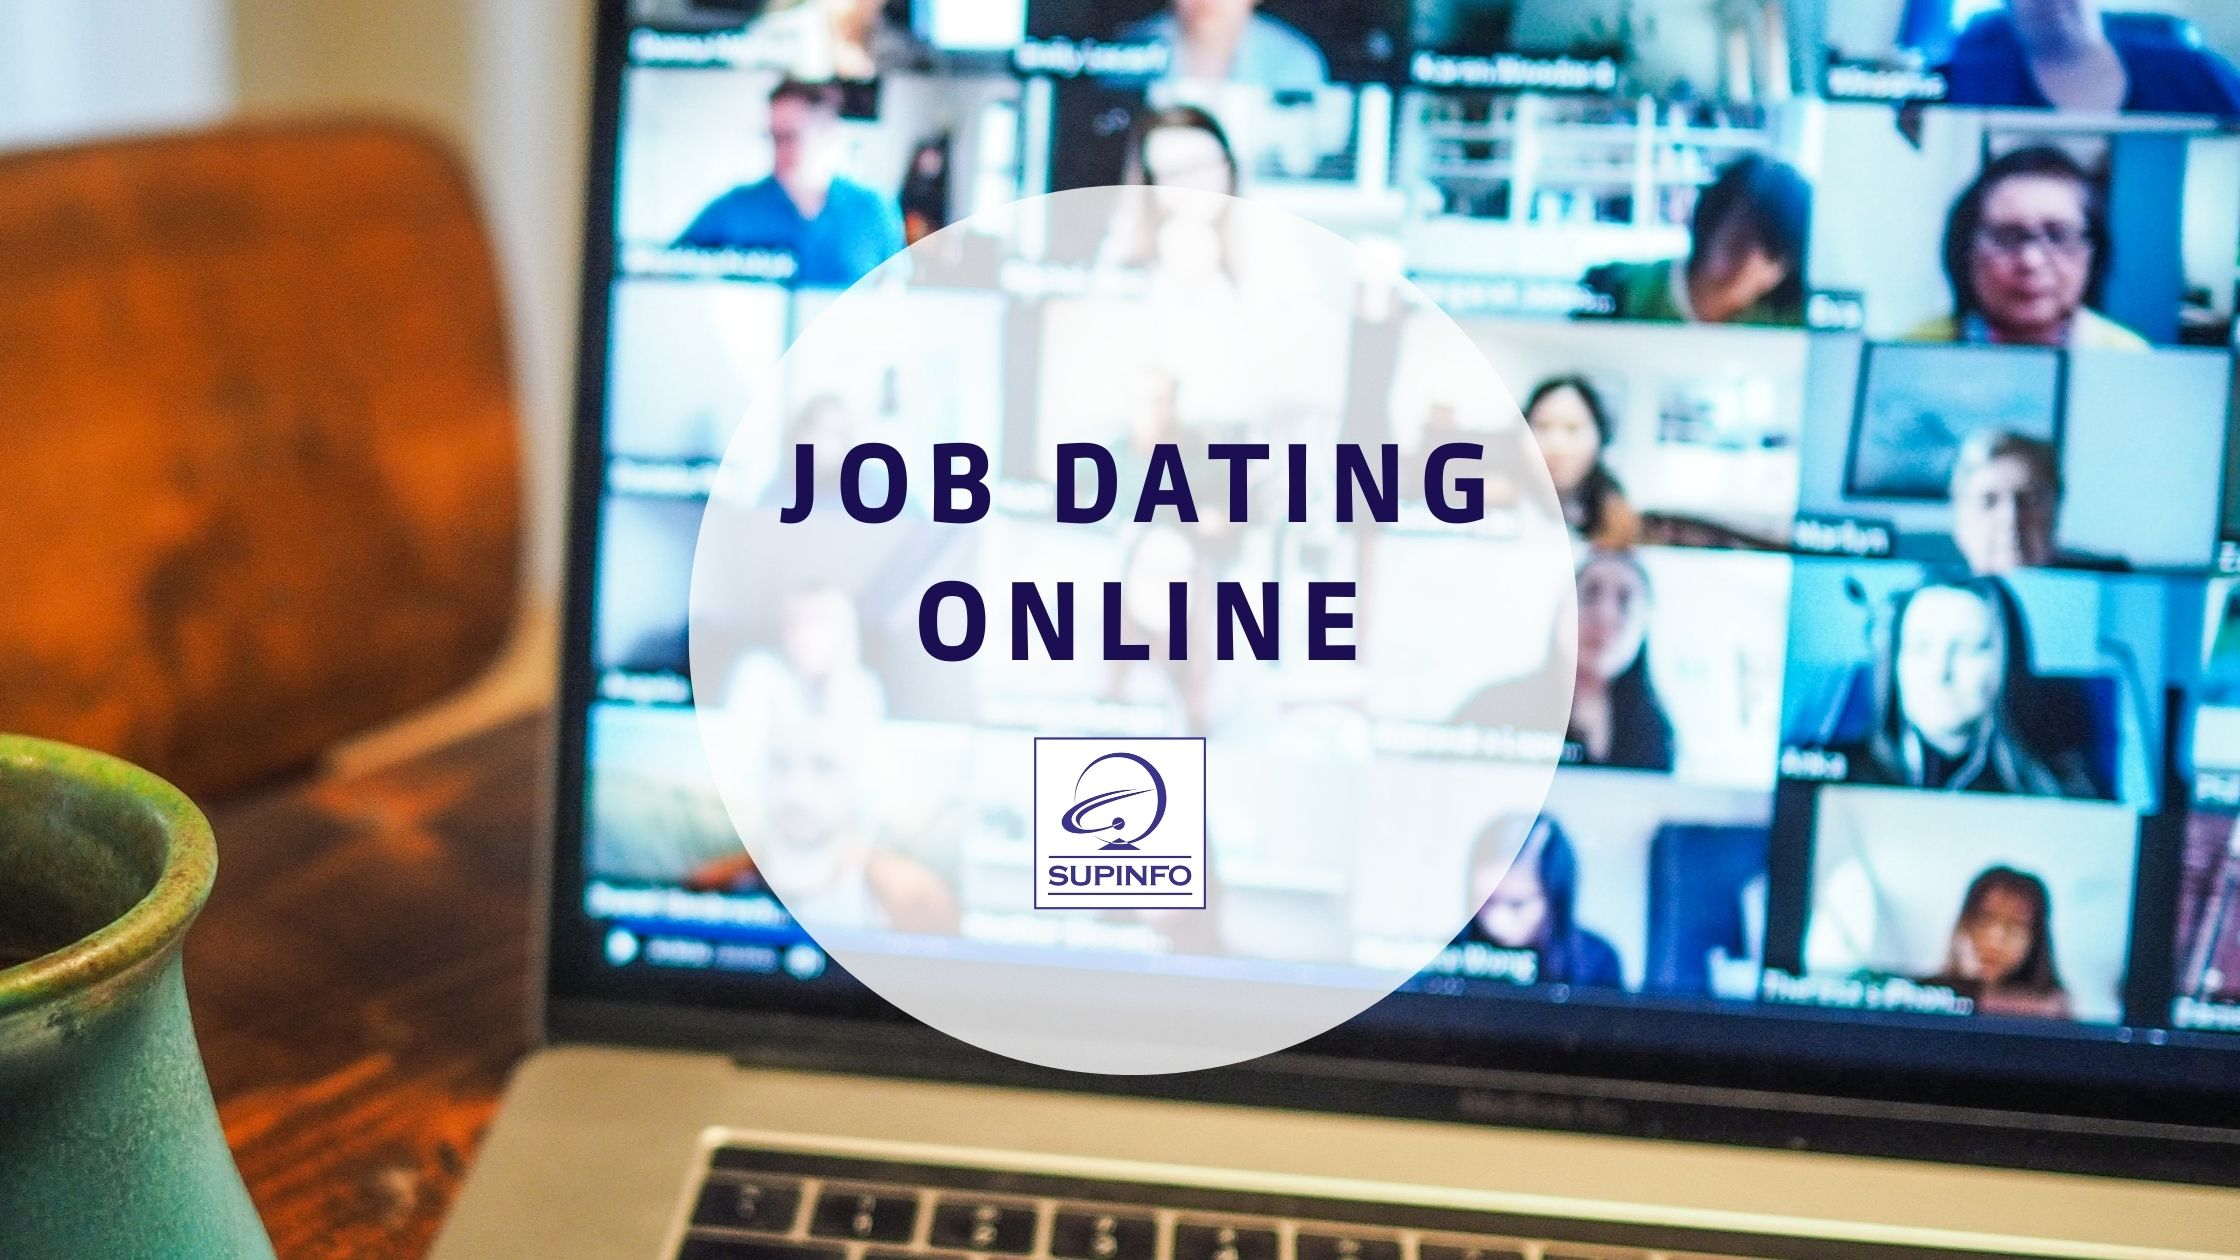 Job Dating Online - Chris Montgomery